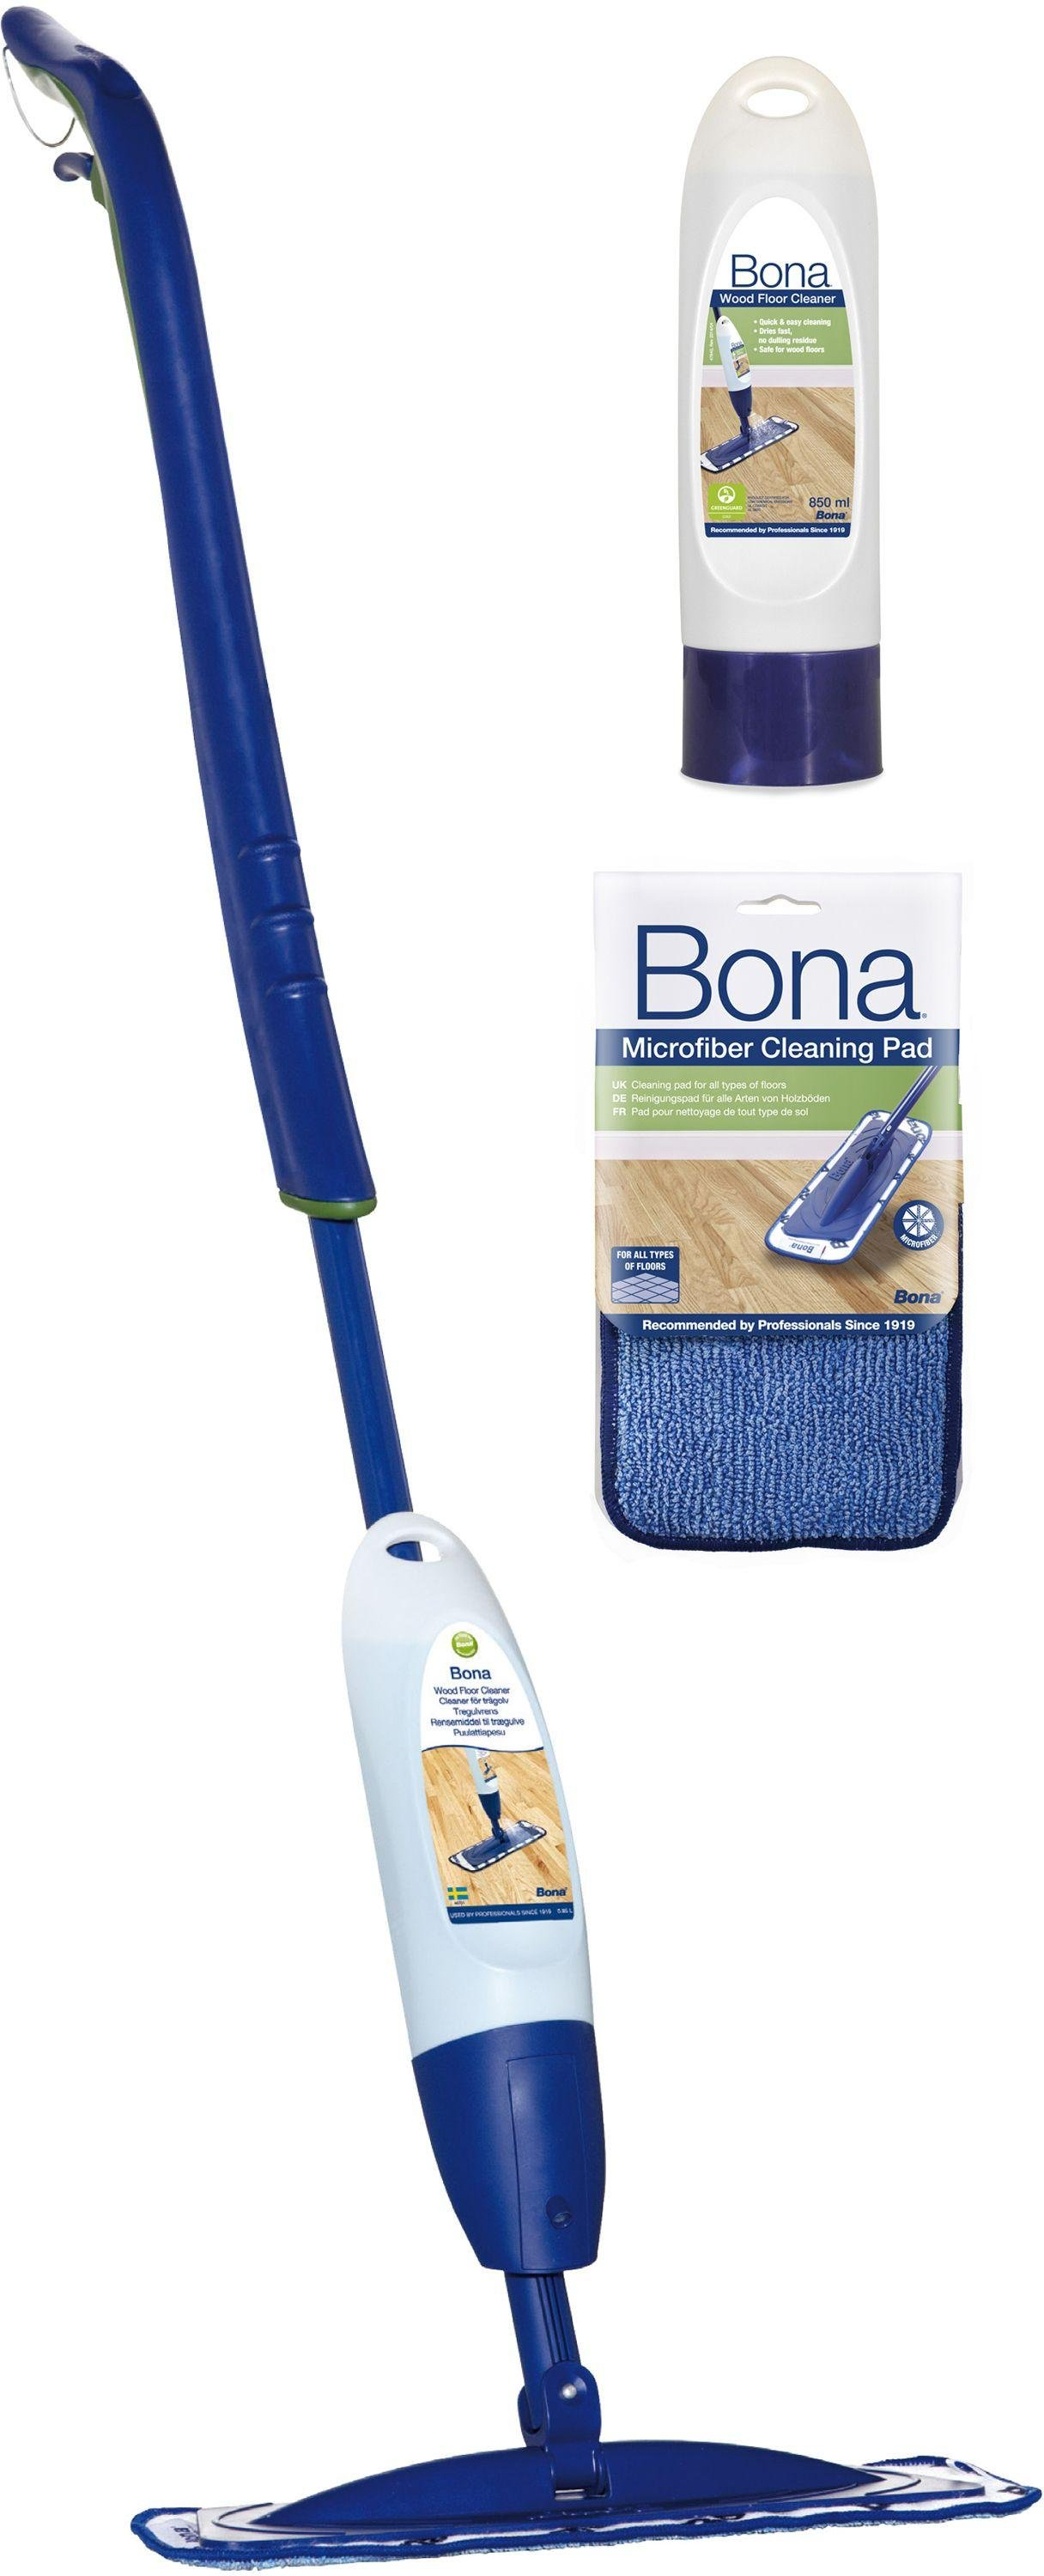 Image result for bona spray mop